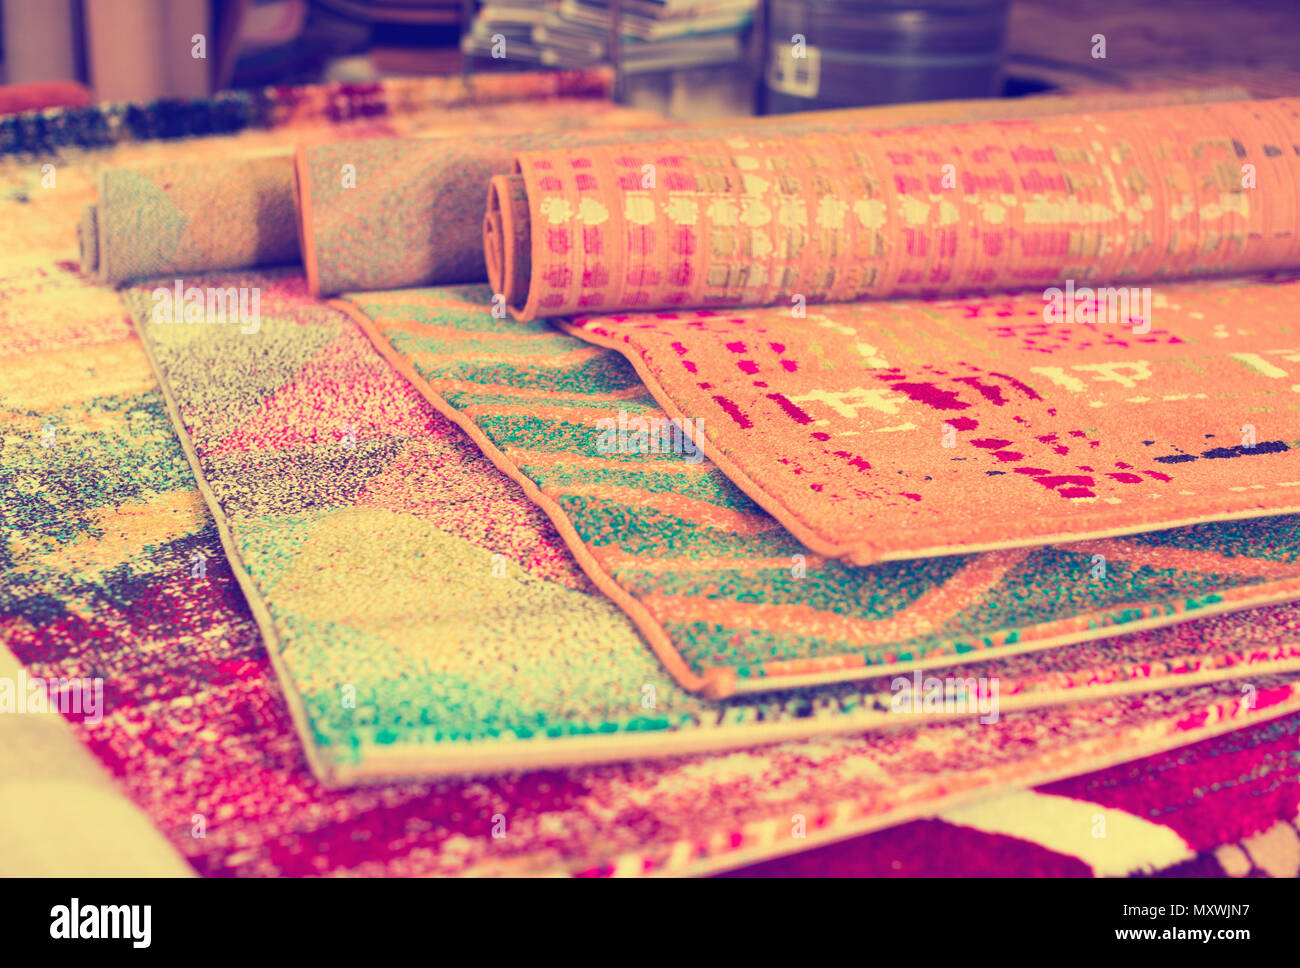 Various Colorful Wool Rugs For Sale At Store No People Stock Photo